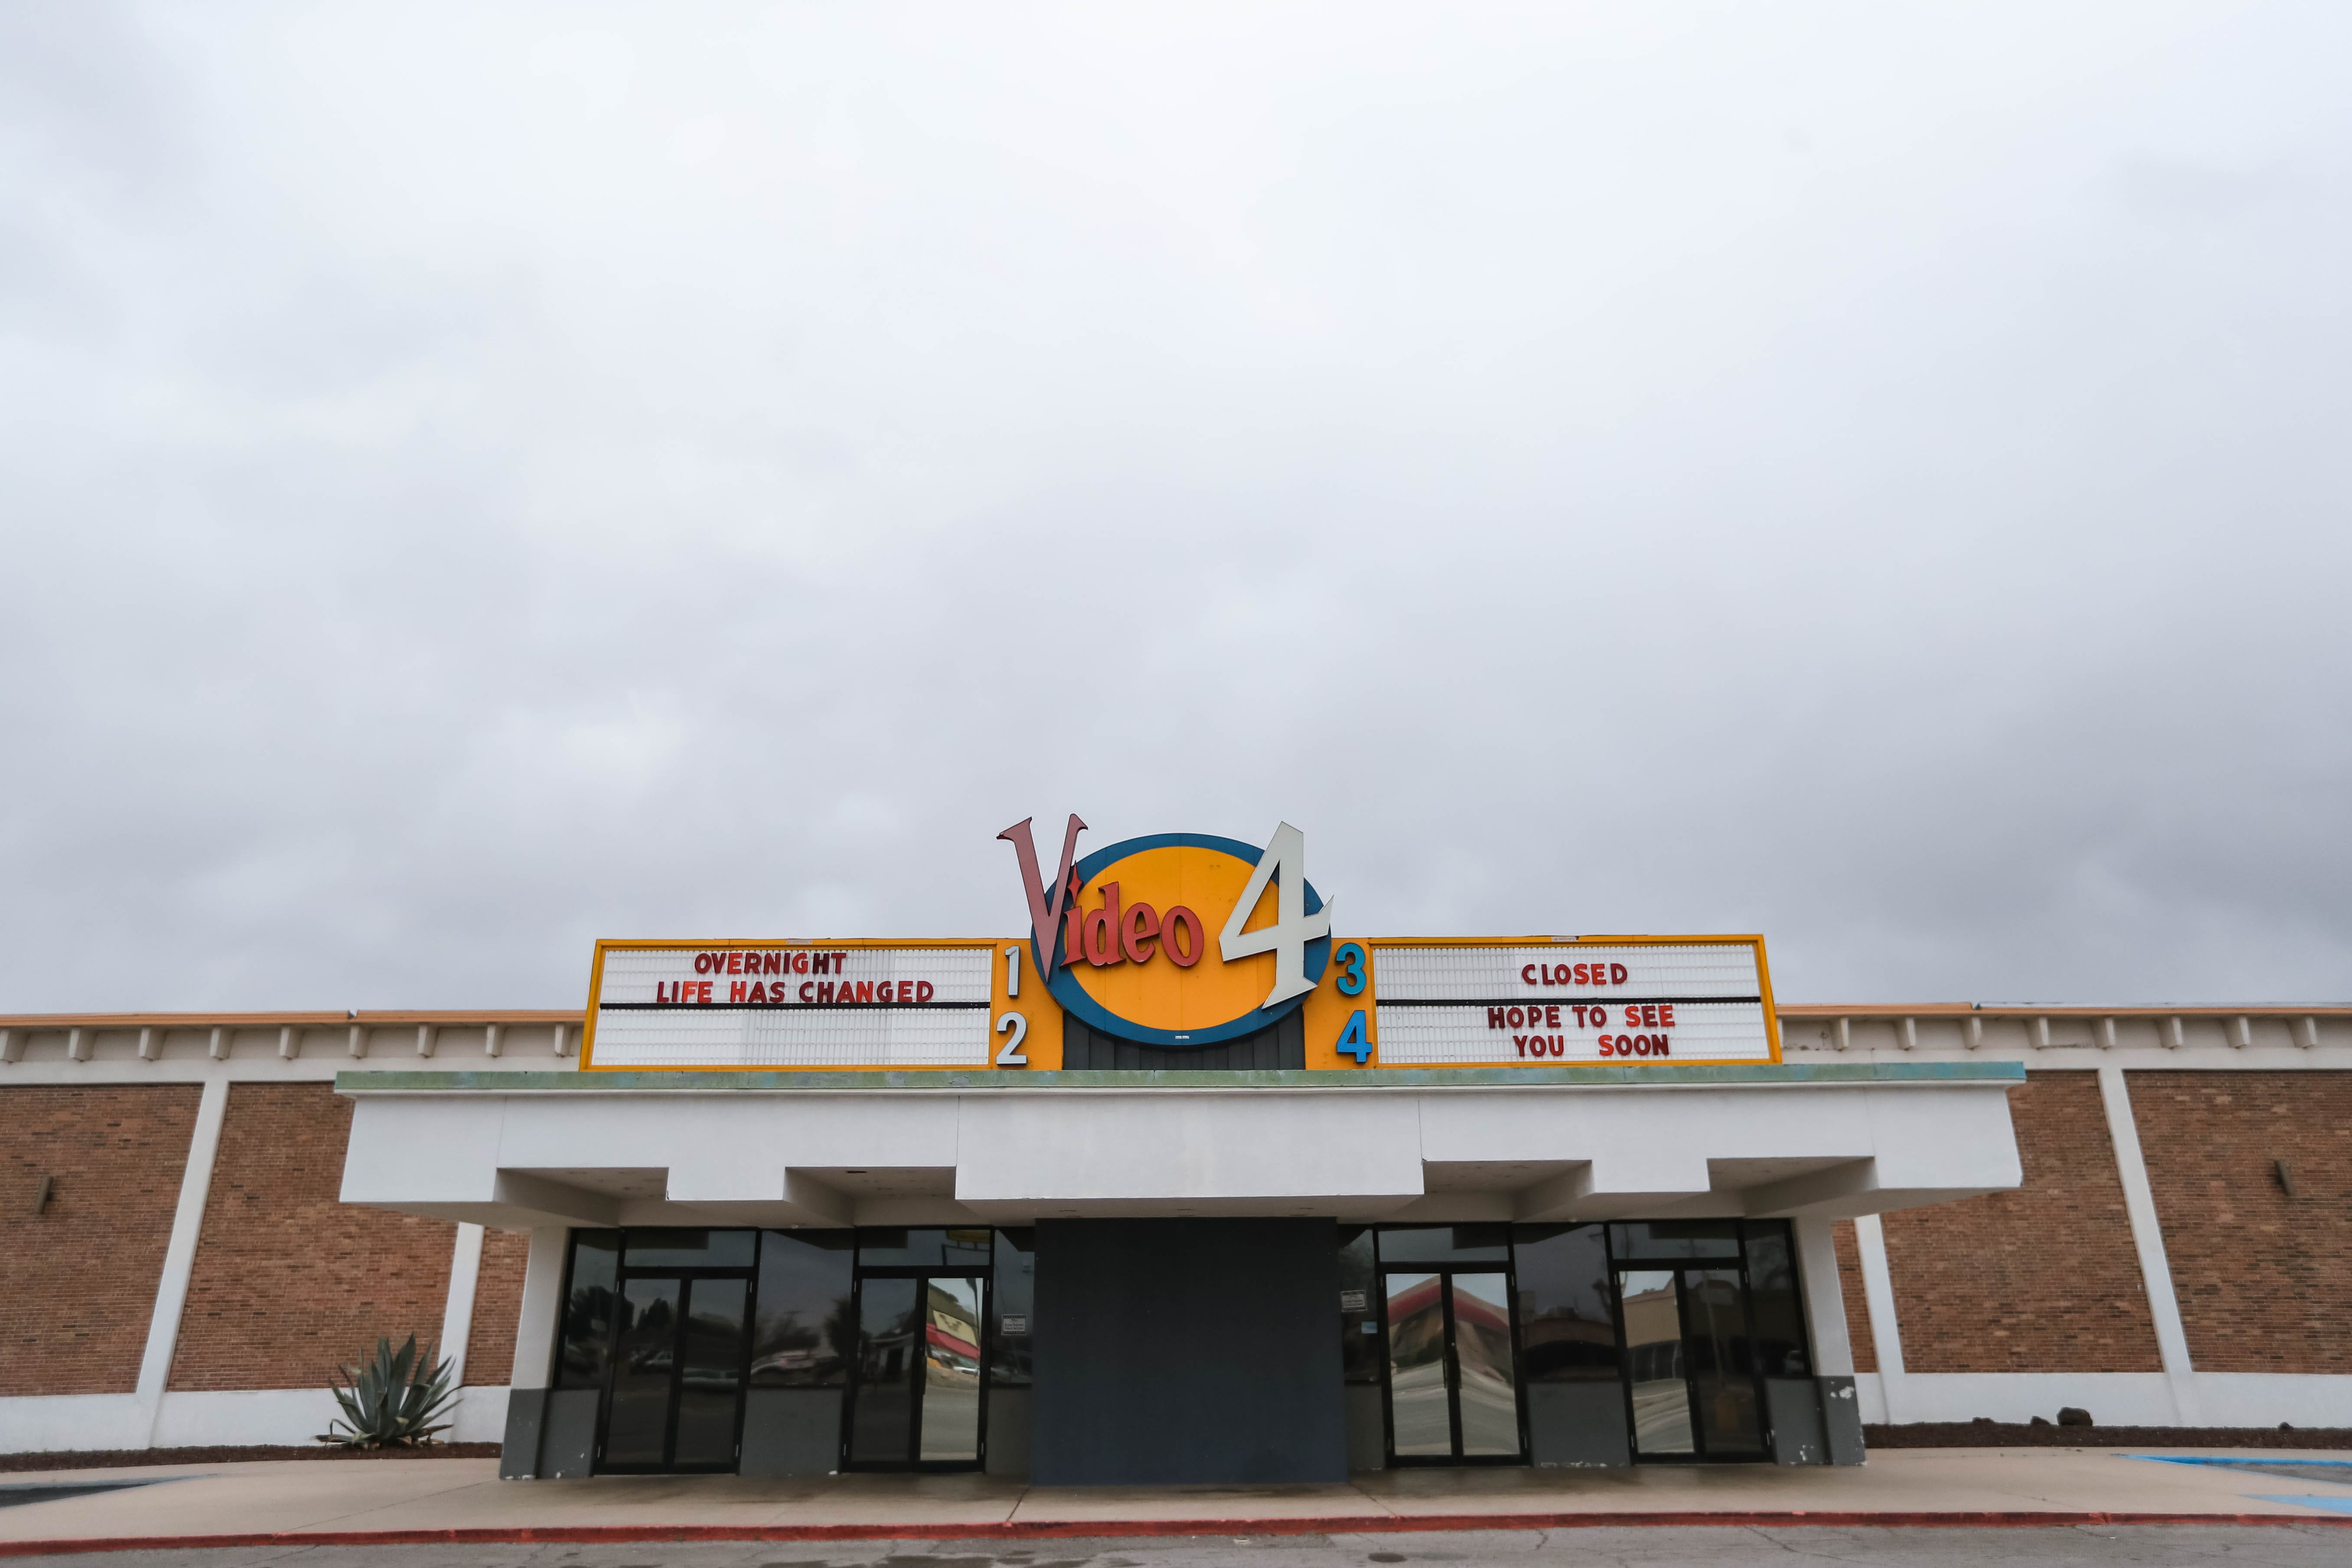 """The Video 4 in Downtown Las Cruces is closed down due to Coronavirus concerns. The Marquee was changed to say """"Overnight life has changes. Closed. Hope to see you soon,"""" on Wednesday, March 18, 2020."""